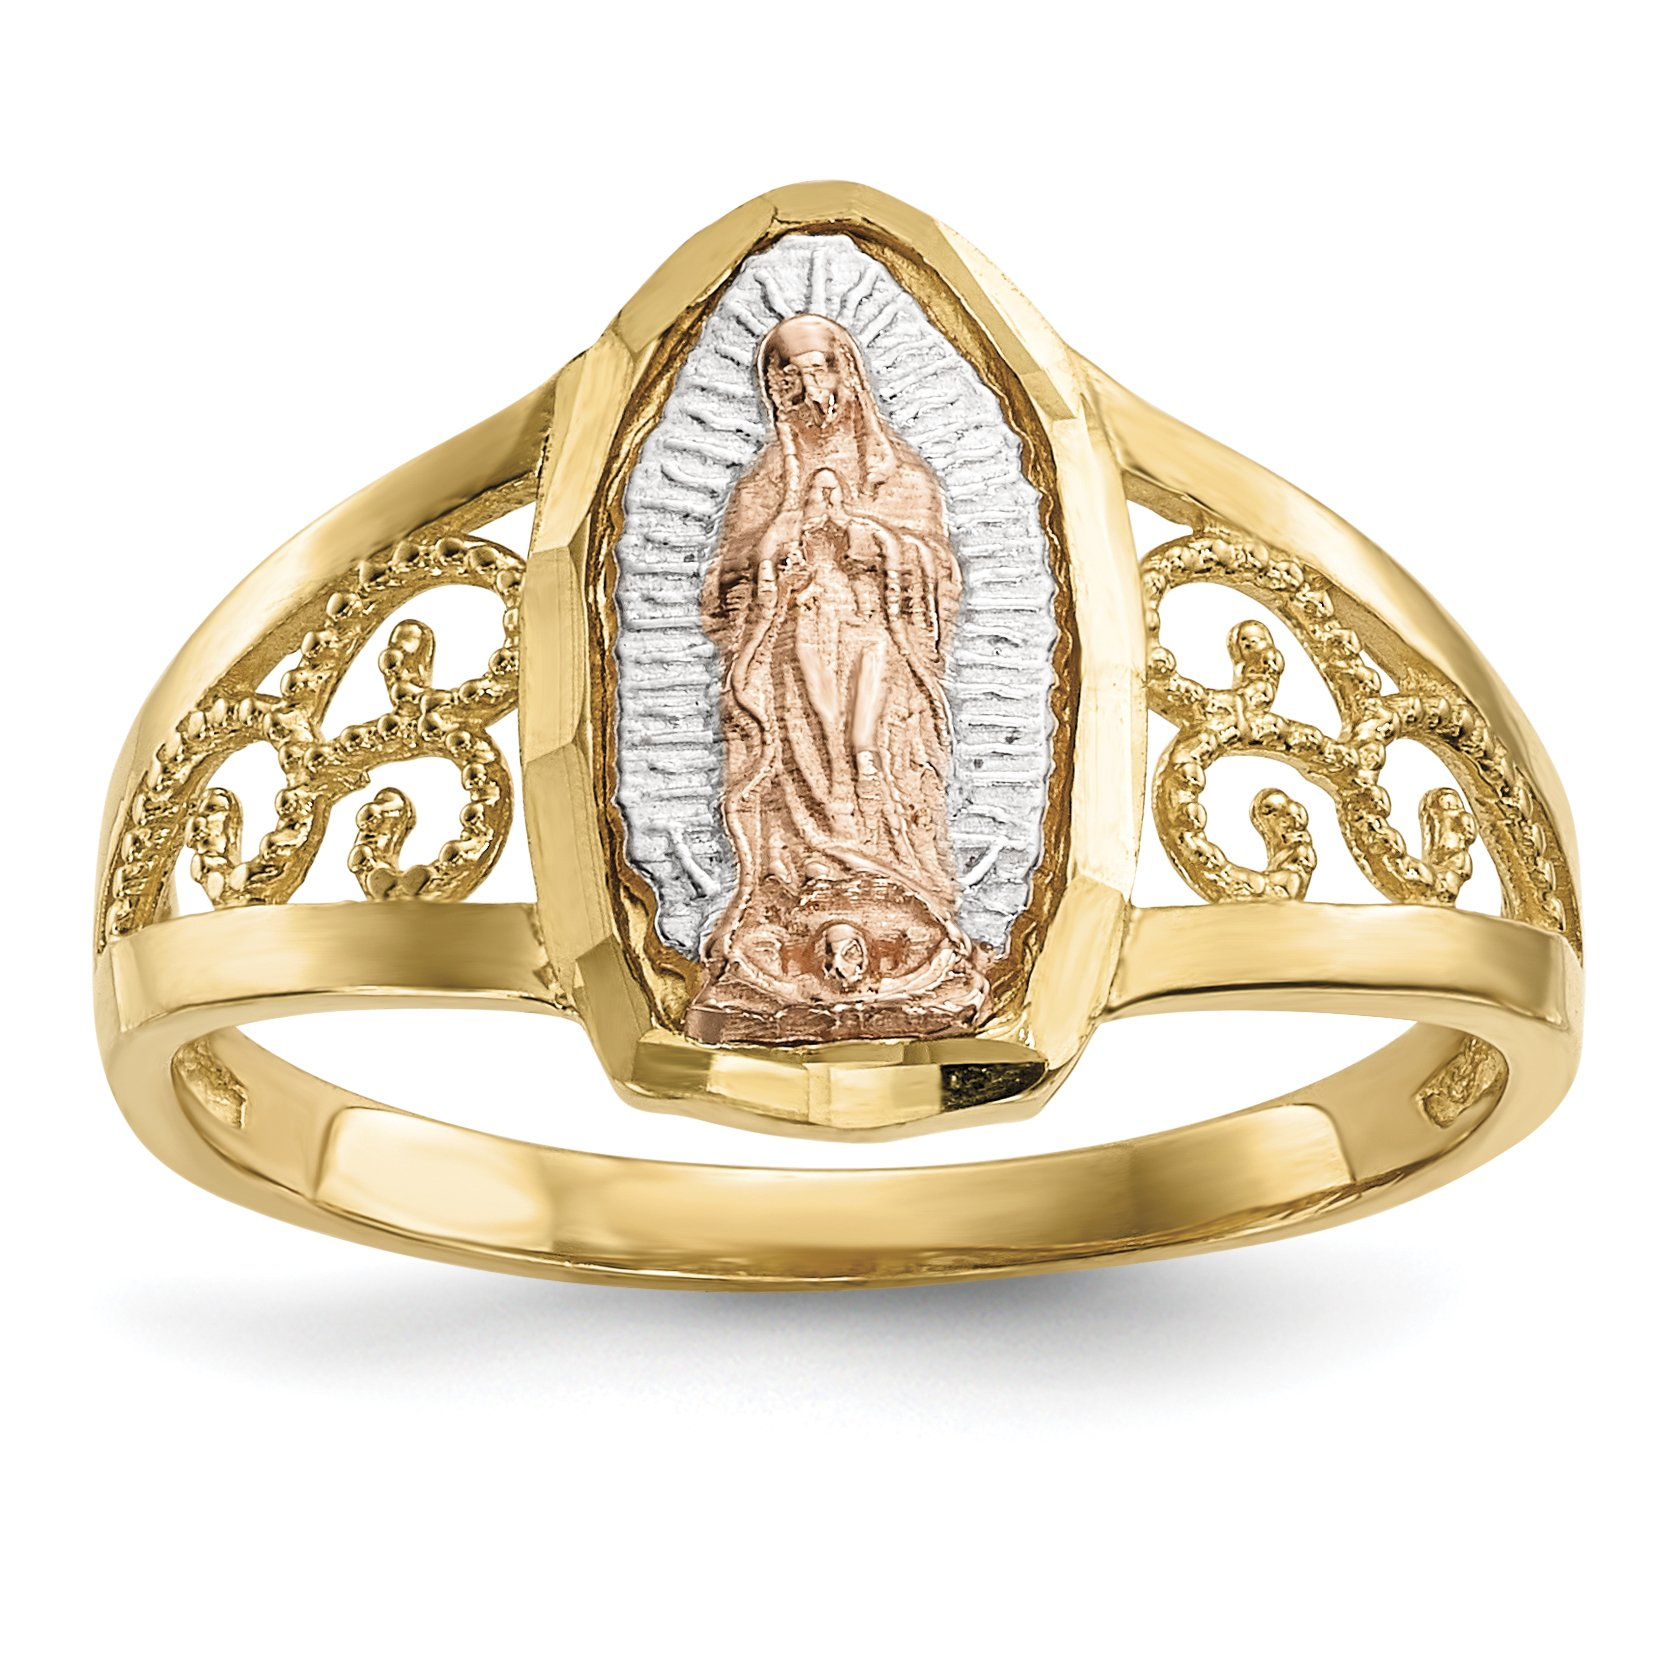 ICE CARATS 14k Two Tone Yellow Gold White Lady Of Guadalupe Band Ring Size 7.00 Religious Fine Jewelry Gift Set For Women Heart